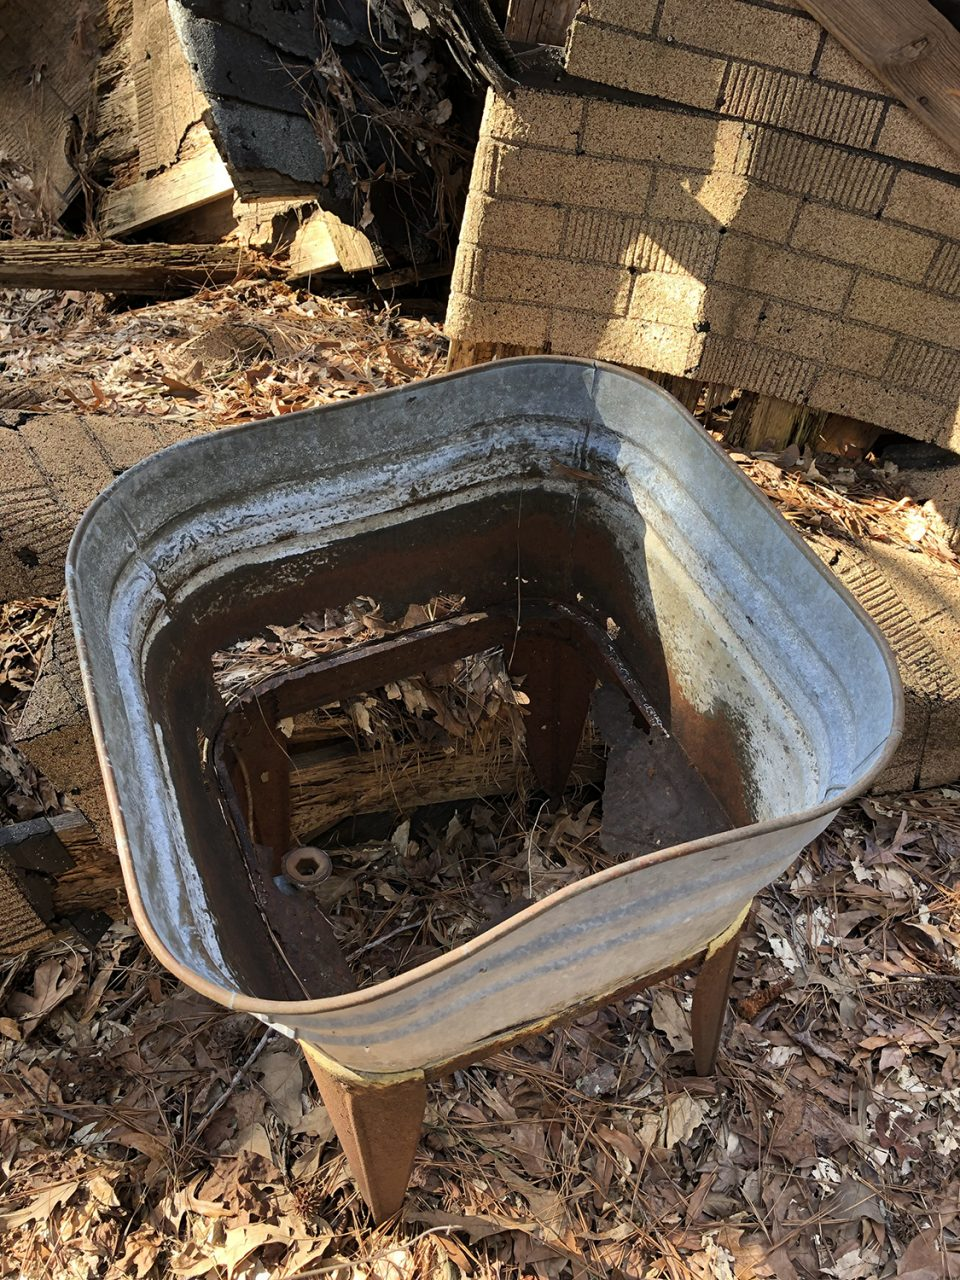 A rusty wash bucket in the yard near the partially collapsed roof.